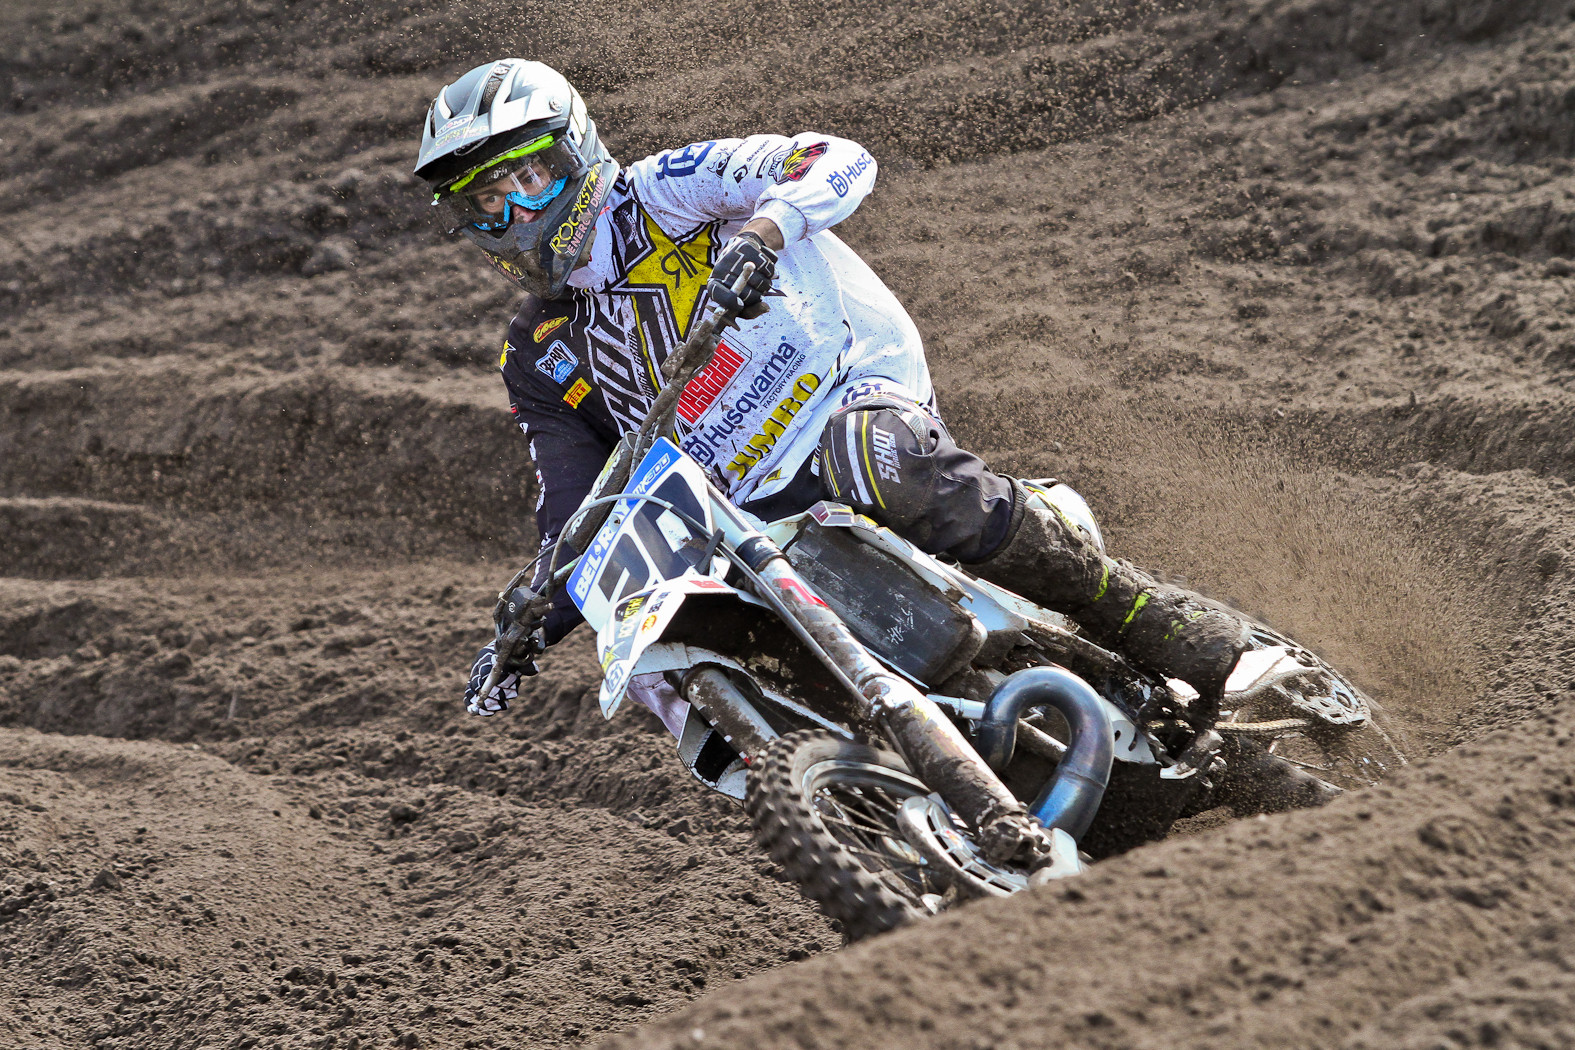 Yentel Martens - In the Pits: MXGP of Europe - Motocross Pictures - Vital MX